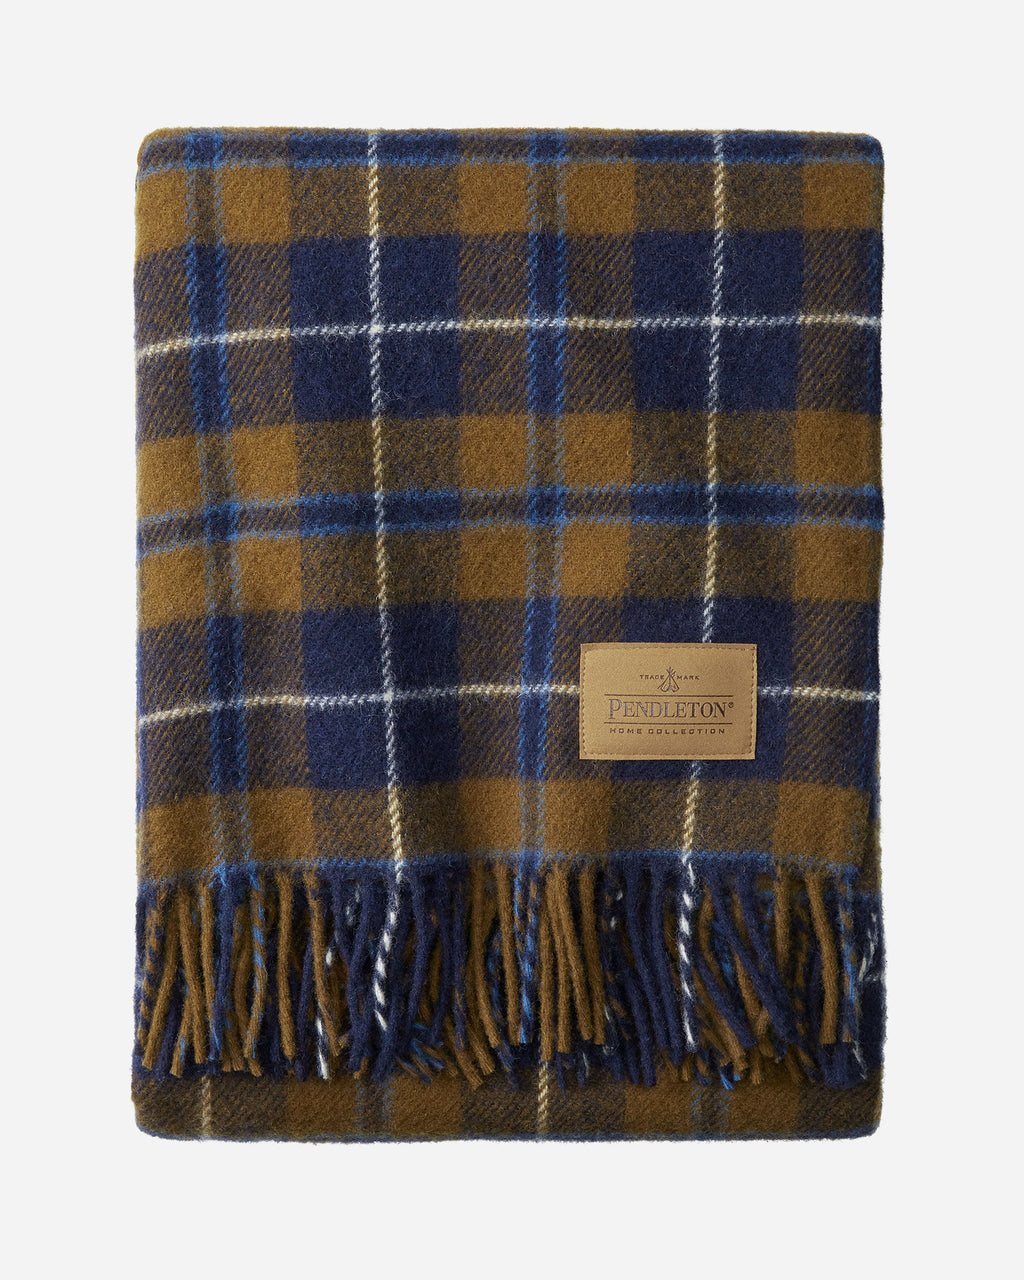 PENDLETON - Motor Robe with Leather Carrier - DOUGLAS TARTAN